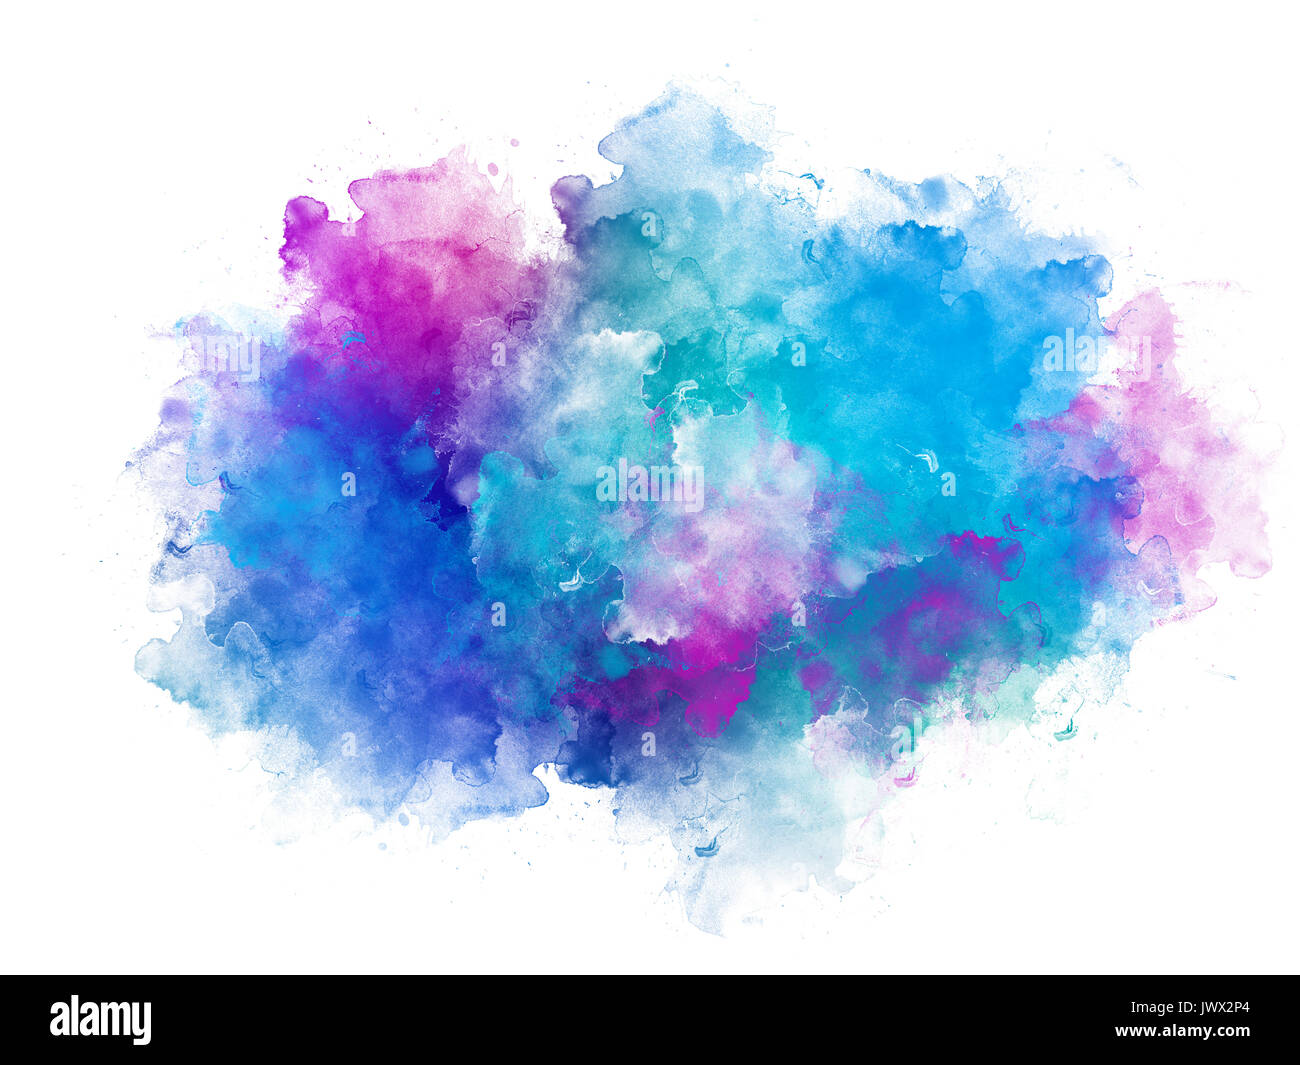 Color Painting Watercolor Splash Background Color Clipart: Pink Watercolor Splash Cut Out Stock Images & Pictures